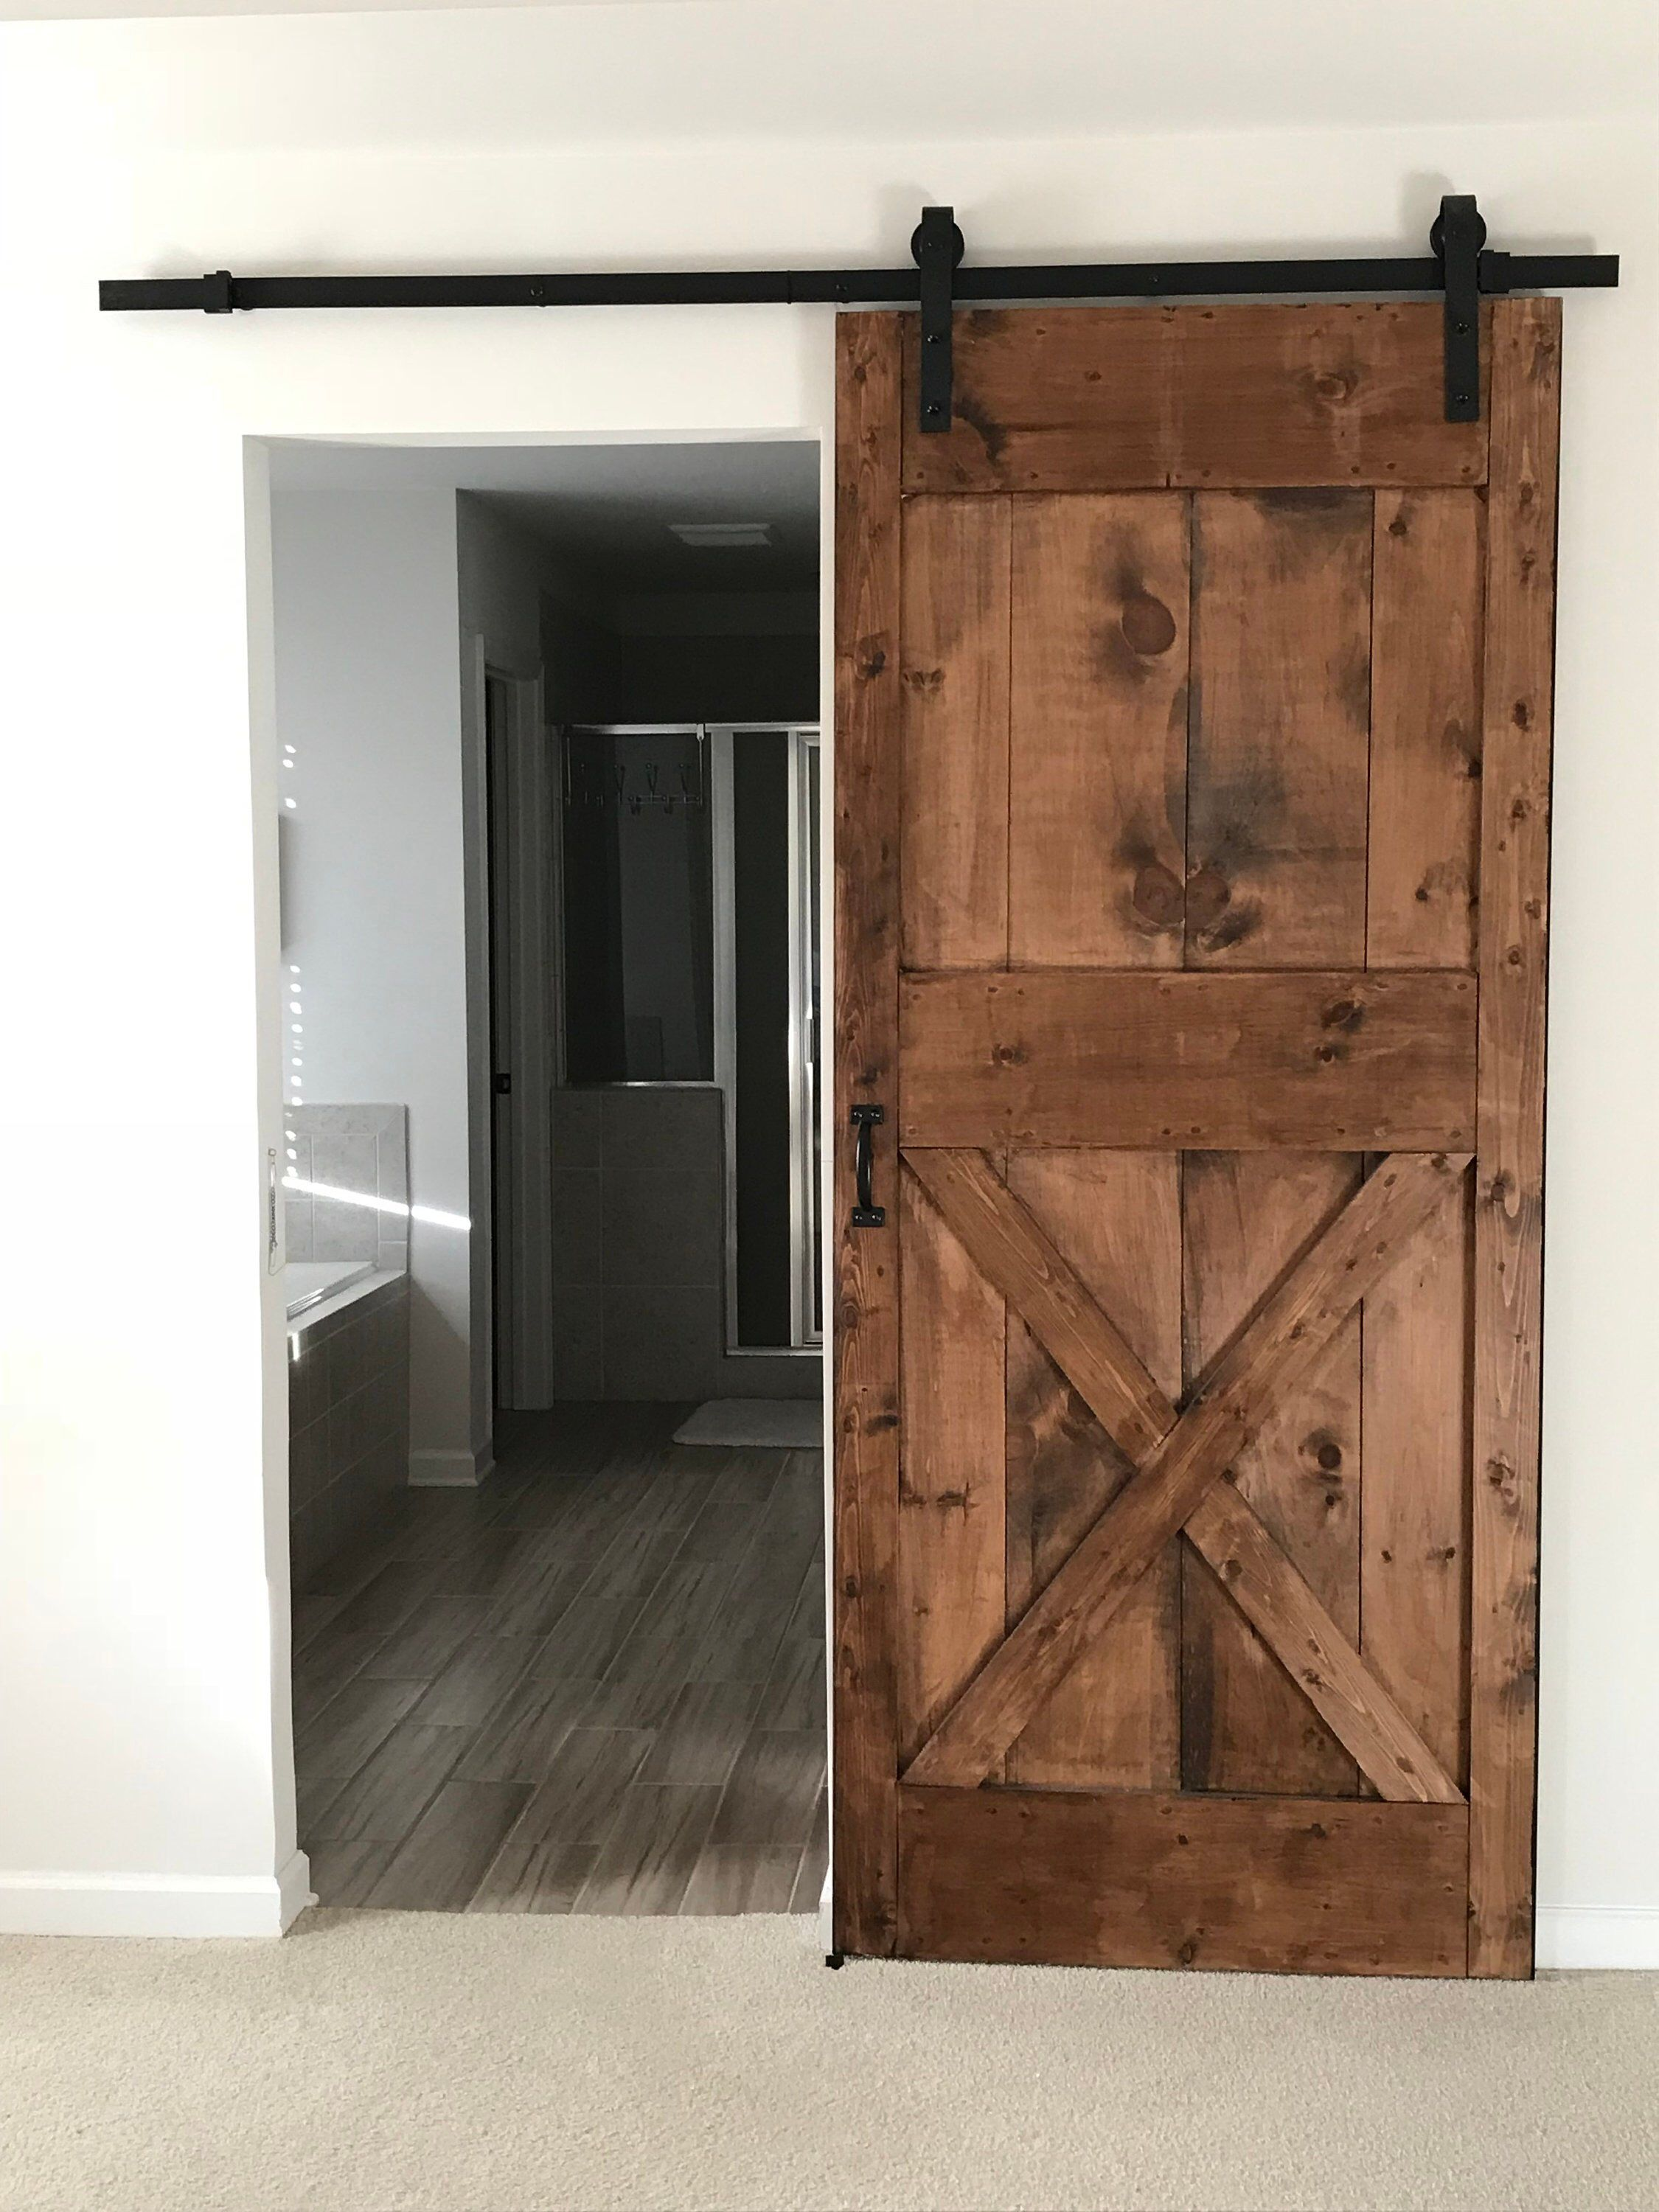 Double Z Barn Door By Woodtisticboutique On Etsy Https Www Etsy